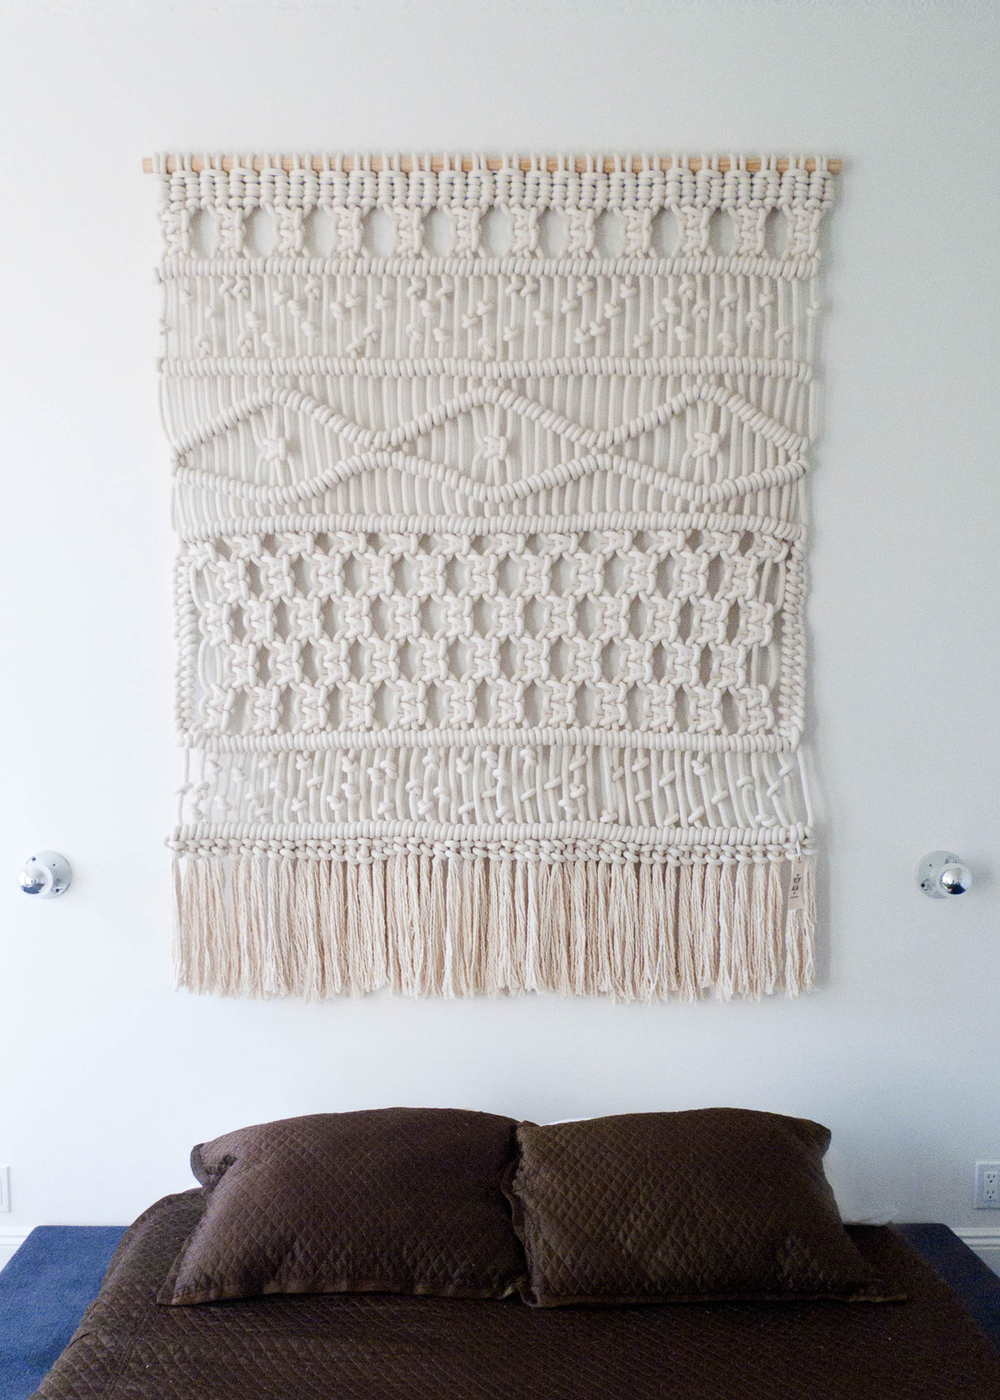 5' x 6'. Cotton Rope. 2013. Custom wall hanging created for a private residence in Brooklyn, New York.